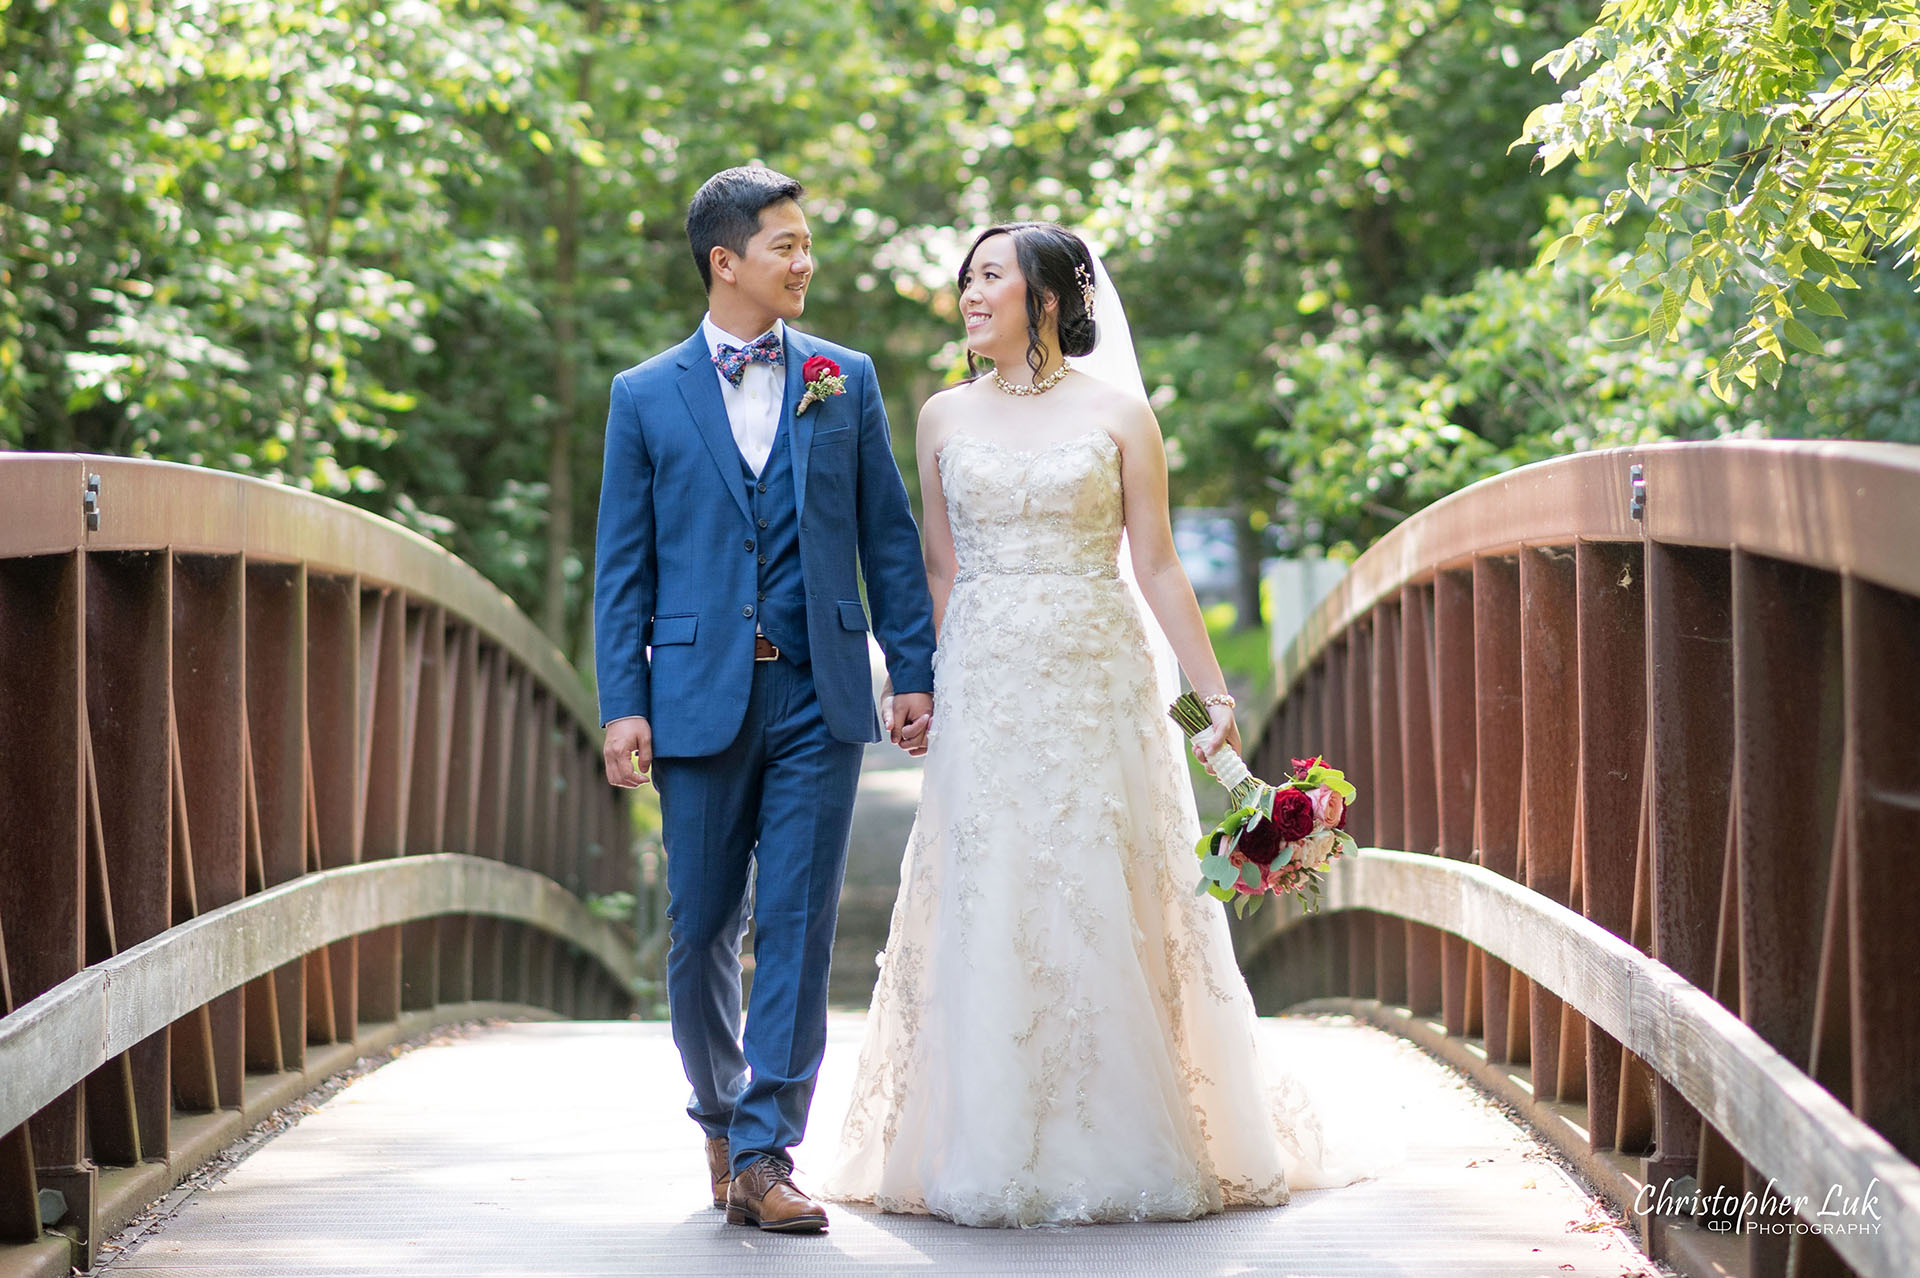 Christopher Luk Toronto Wedding Photographer Bridle Trail Baptist Church Unionville Main Street Crystal Fountain Event Venue Bride Groom Natural Photojournalistic Candid Creative Portrait Session Pictures Forest Trail Walkway Bridge Park Holding Hands Walking Together Landscape